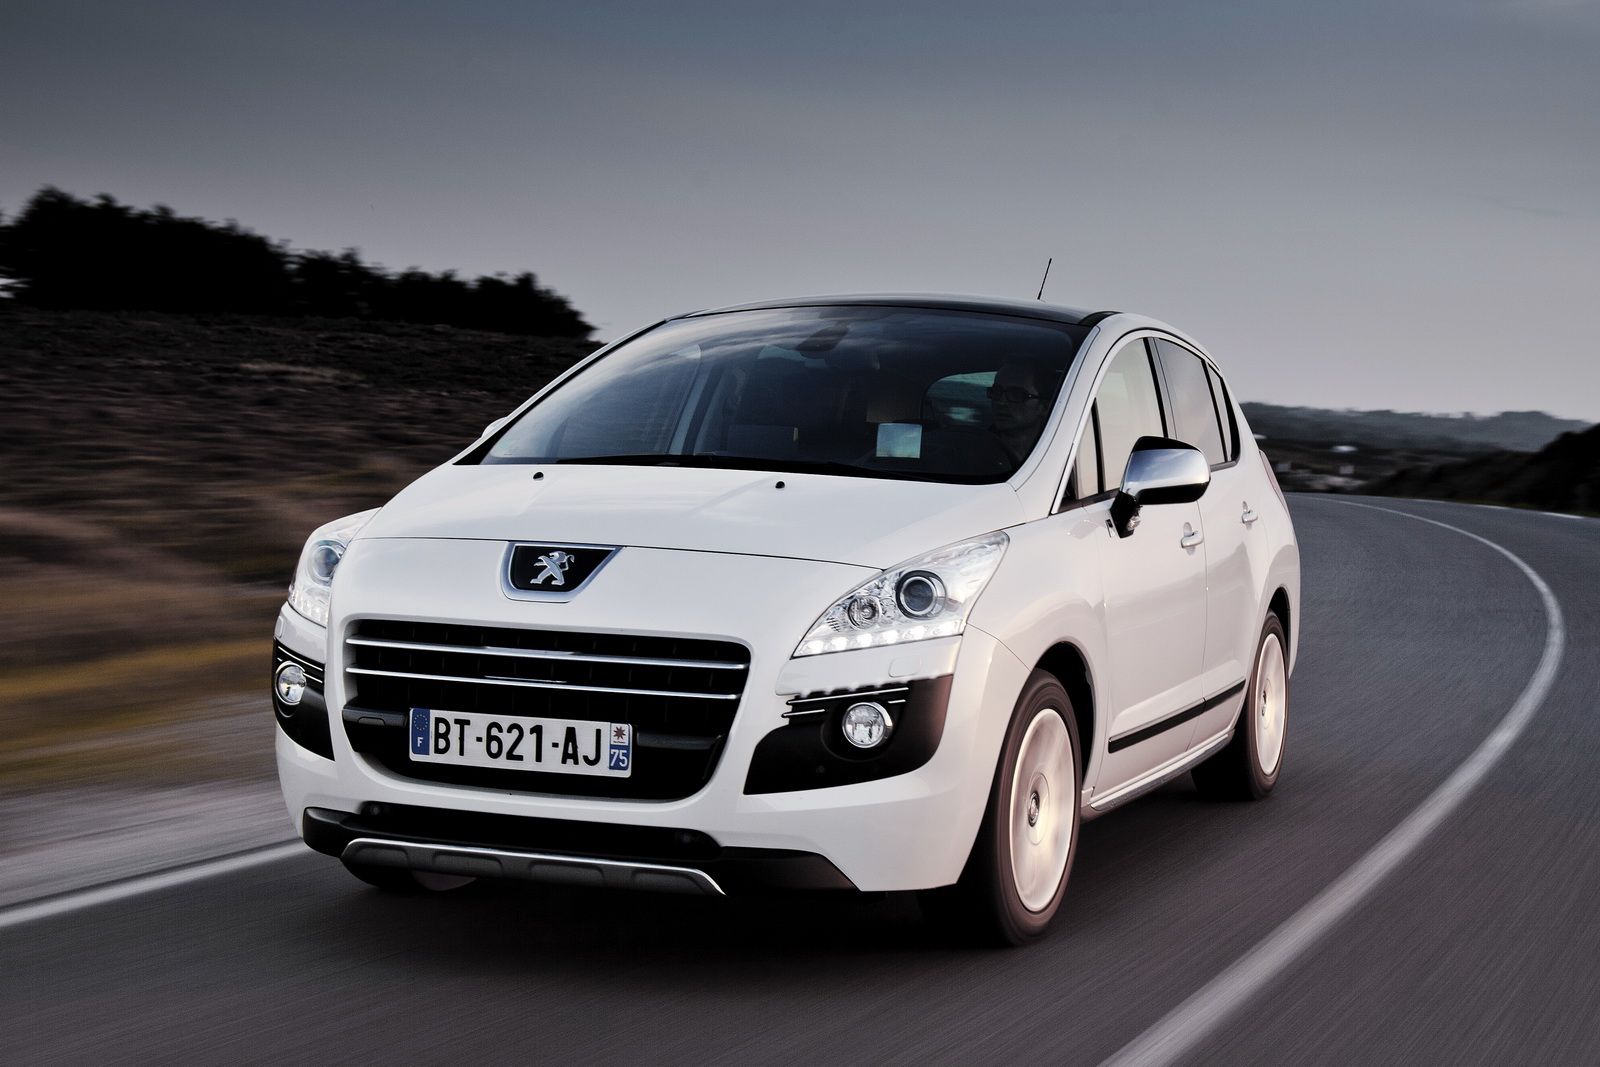 peugeot 3008 hybrid emissions lowered Photo Gallery Wallpapers HD